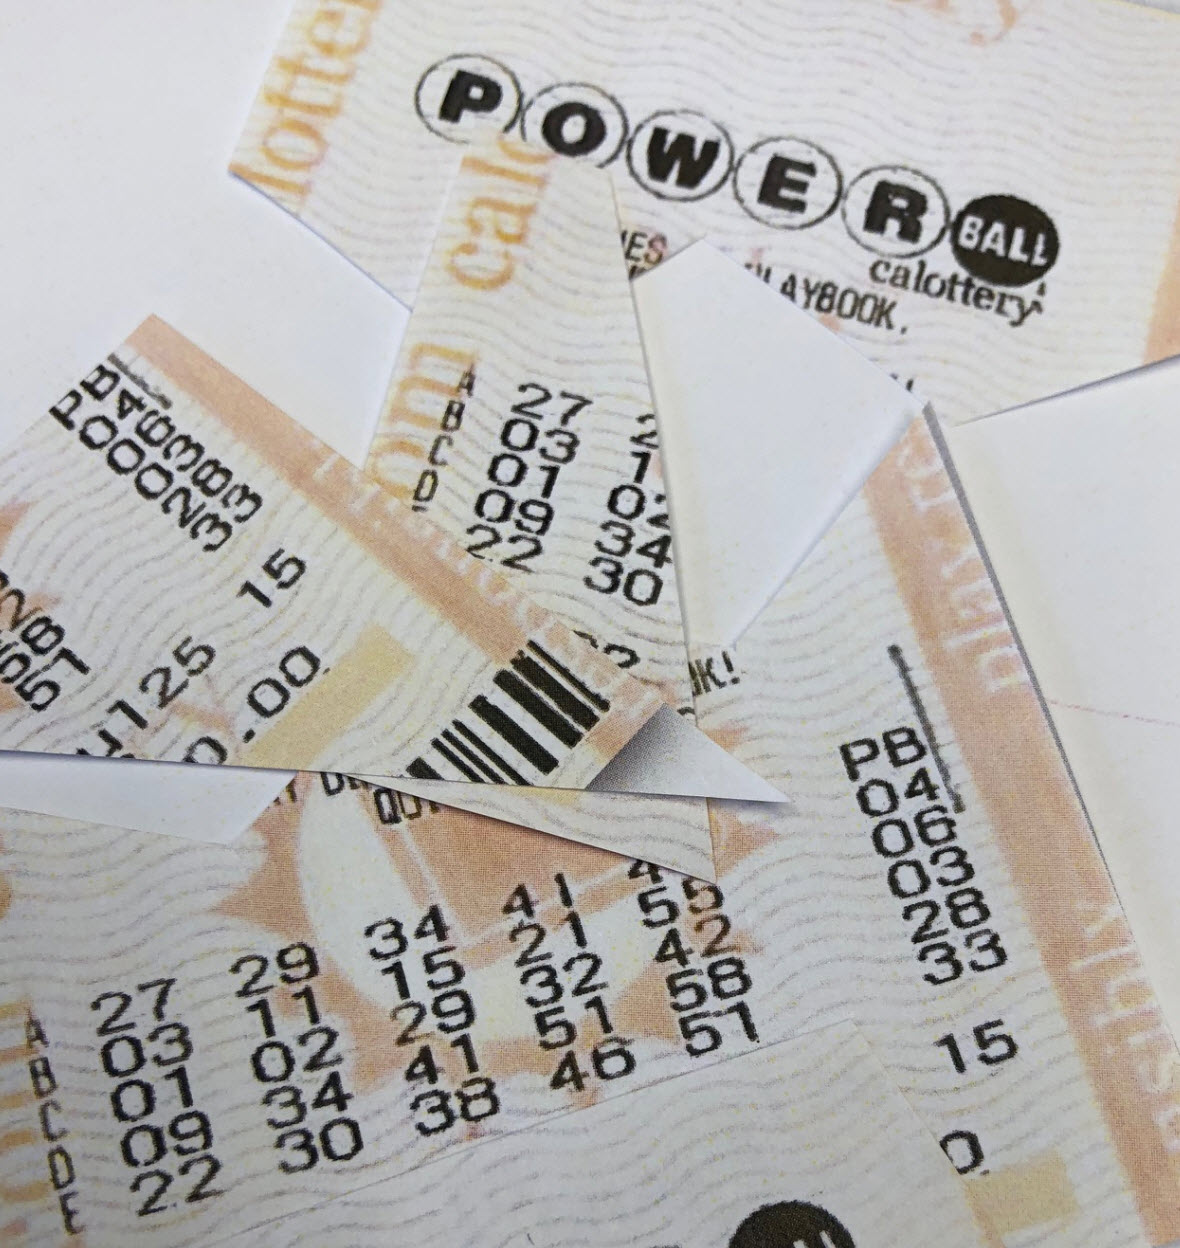 California Man Convicted After Falsely Claiming to be Mega-Million Powerball Winner